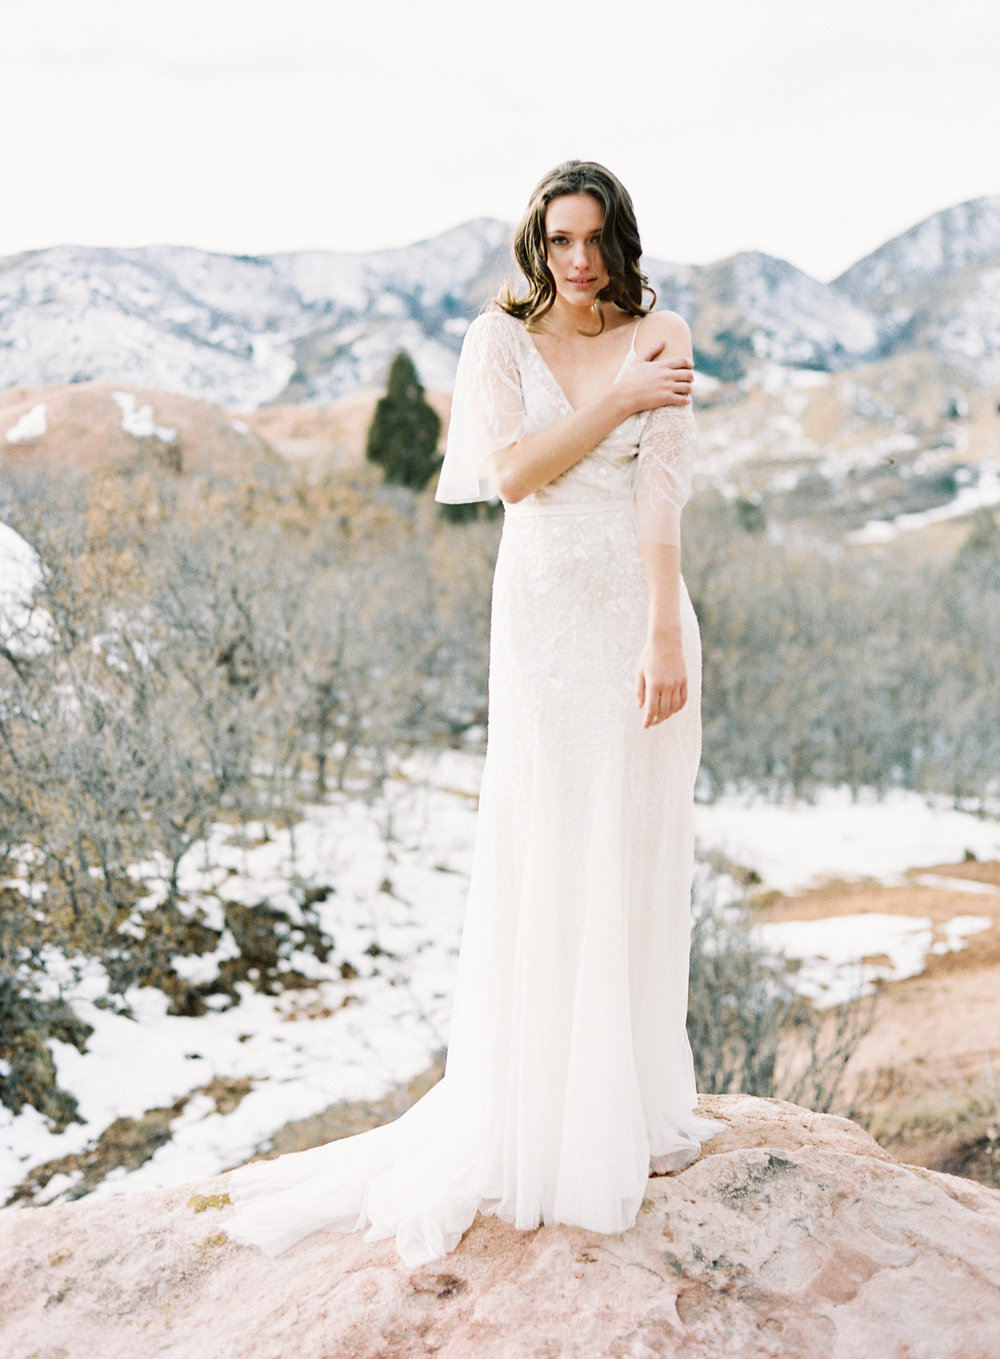 Winter bridal portraits